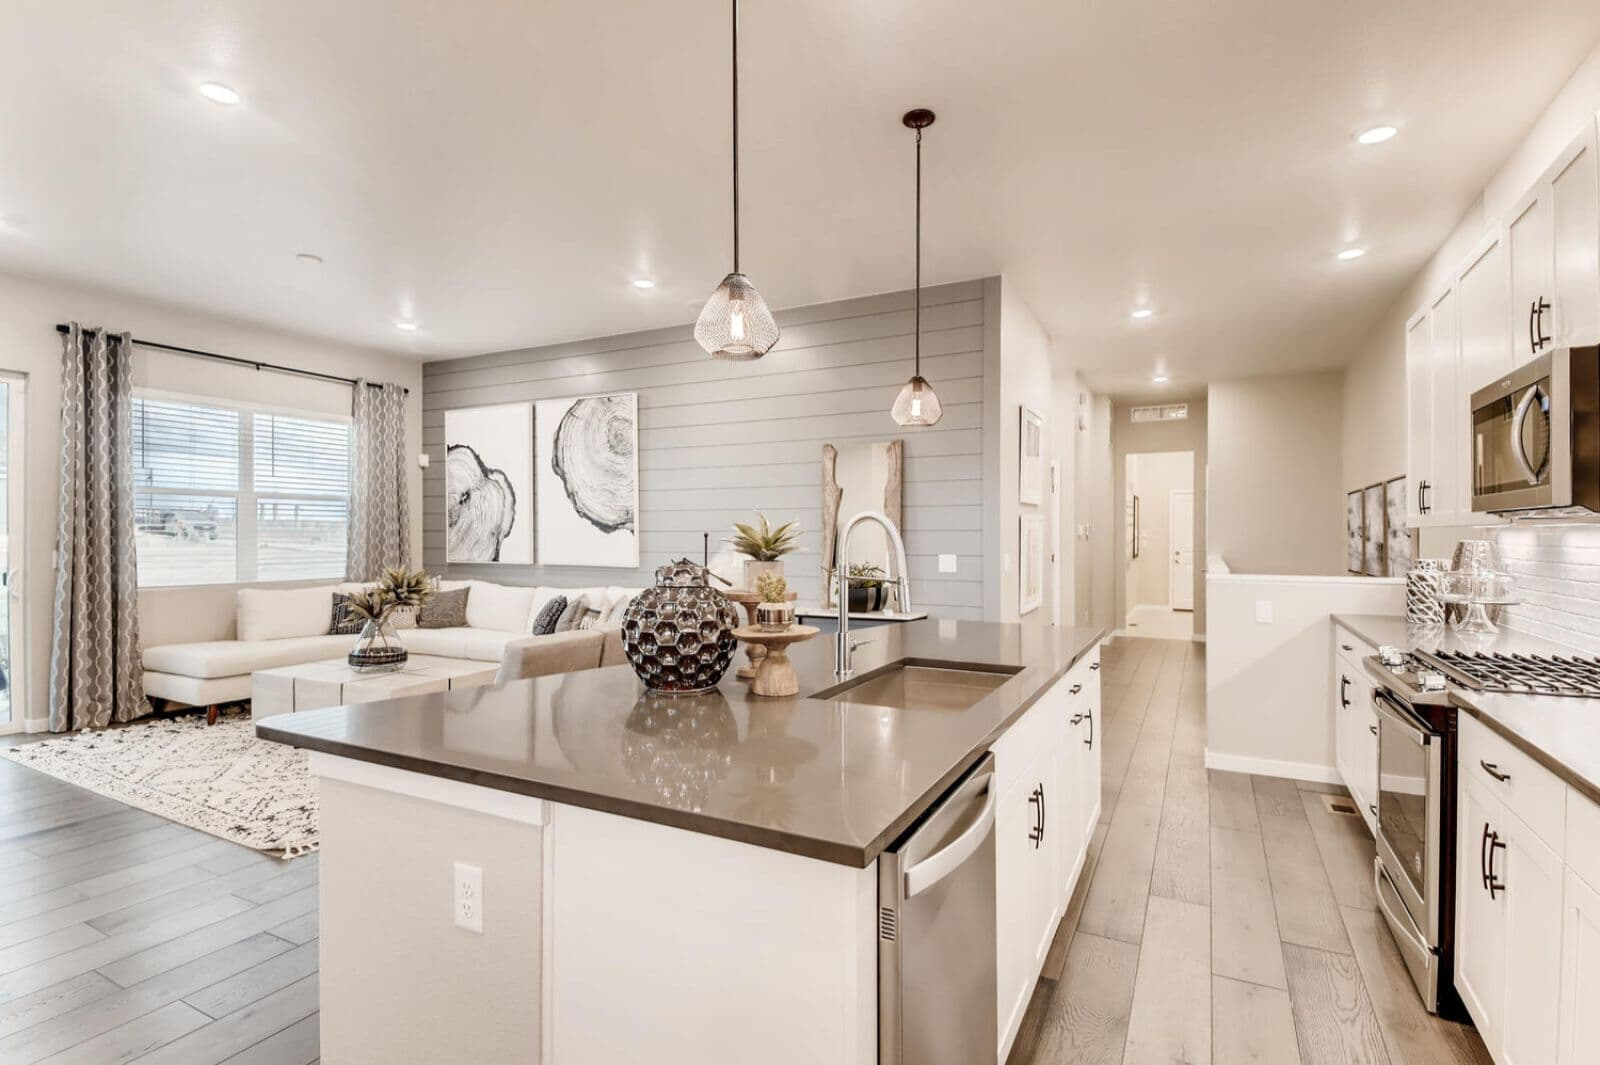 Villa-One-Kitchen-Baerfoot-Lakes-Denver-Colorado